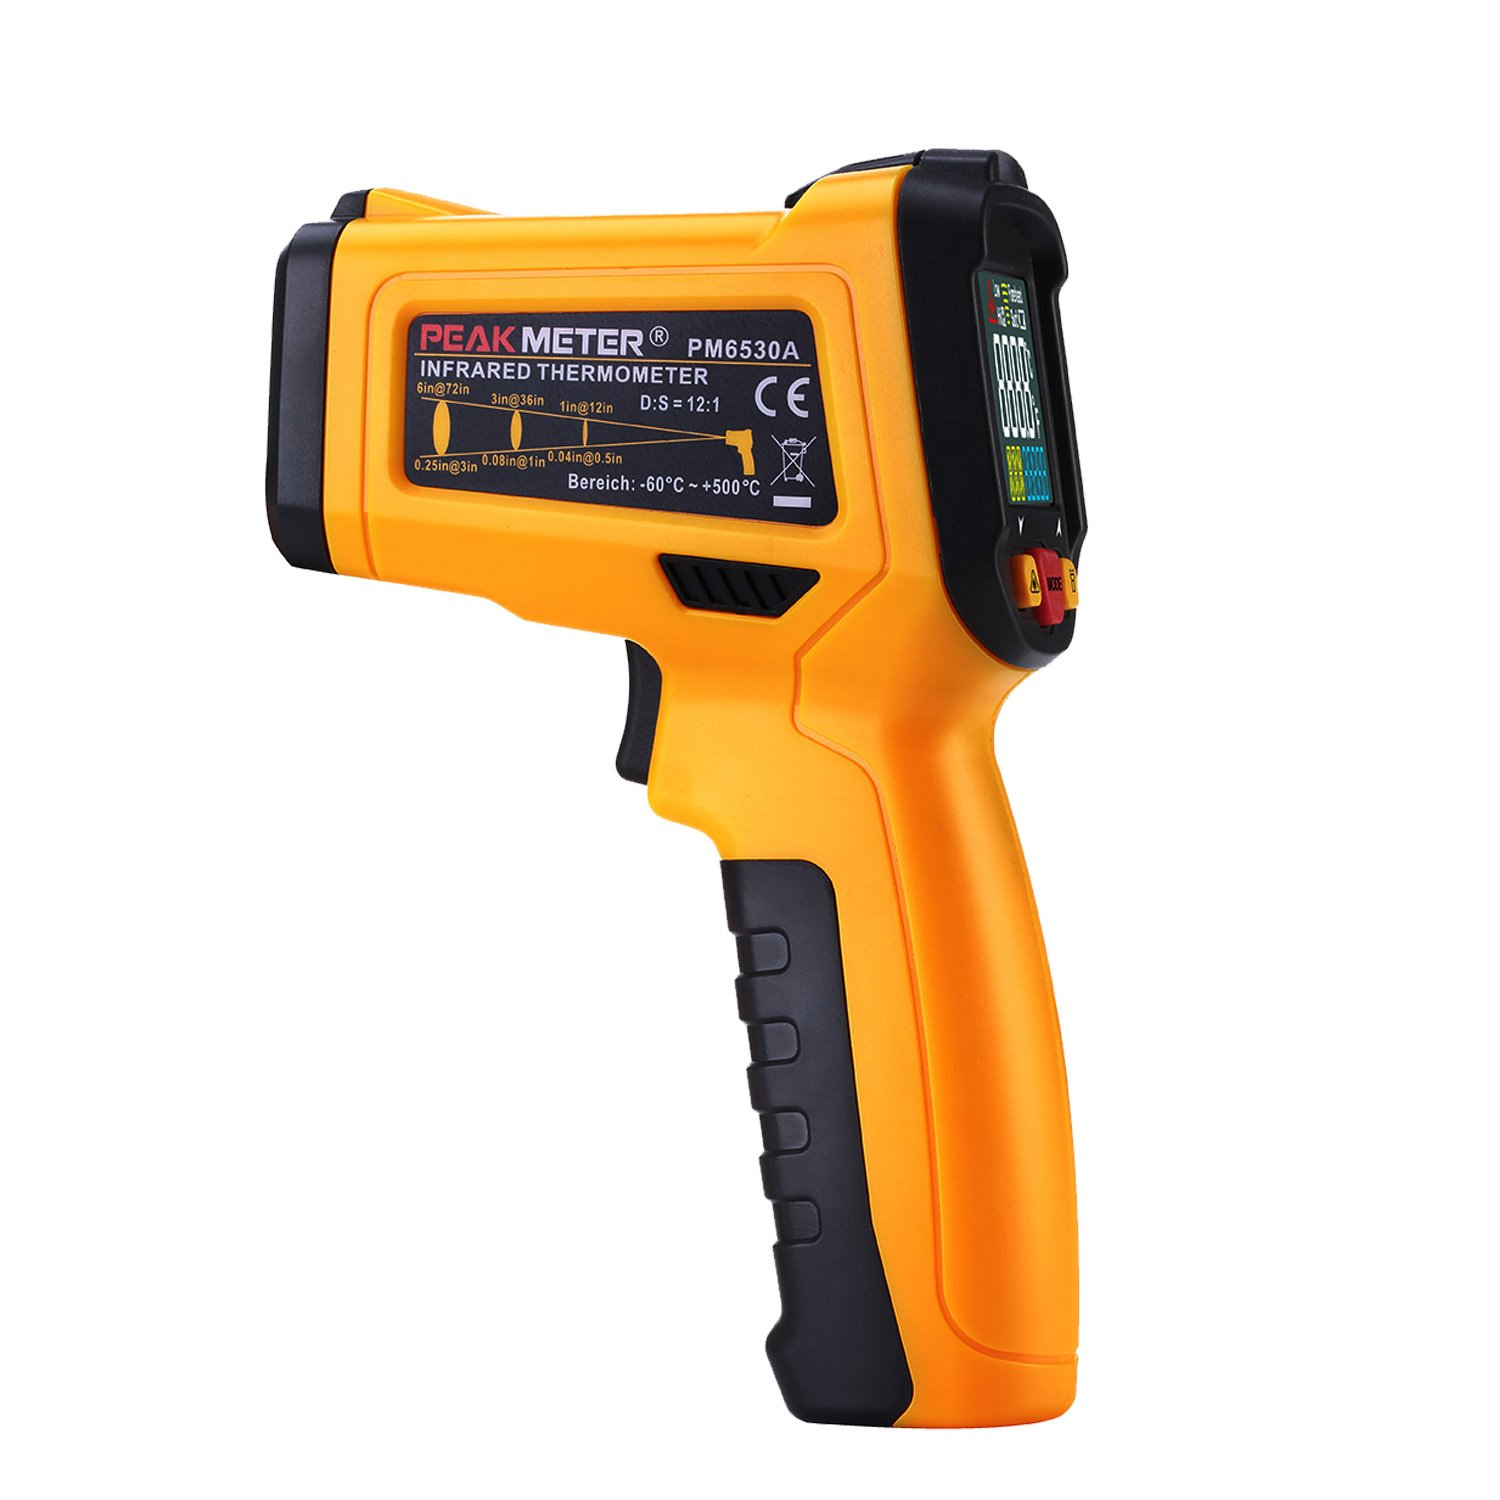 Digital Infrared thermometer Peakmeter PM6530A Laser IR Temperature Gun LCD for Kitchen Cooking Automotive with Temperature Bridge Alarm Function Display -58°F~572°F(-50°C~300°C) by uvcetech (Image #8)